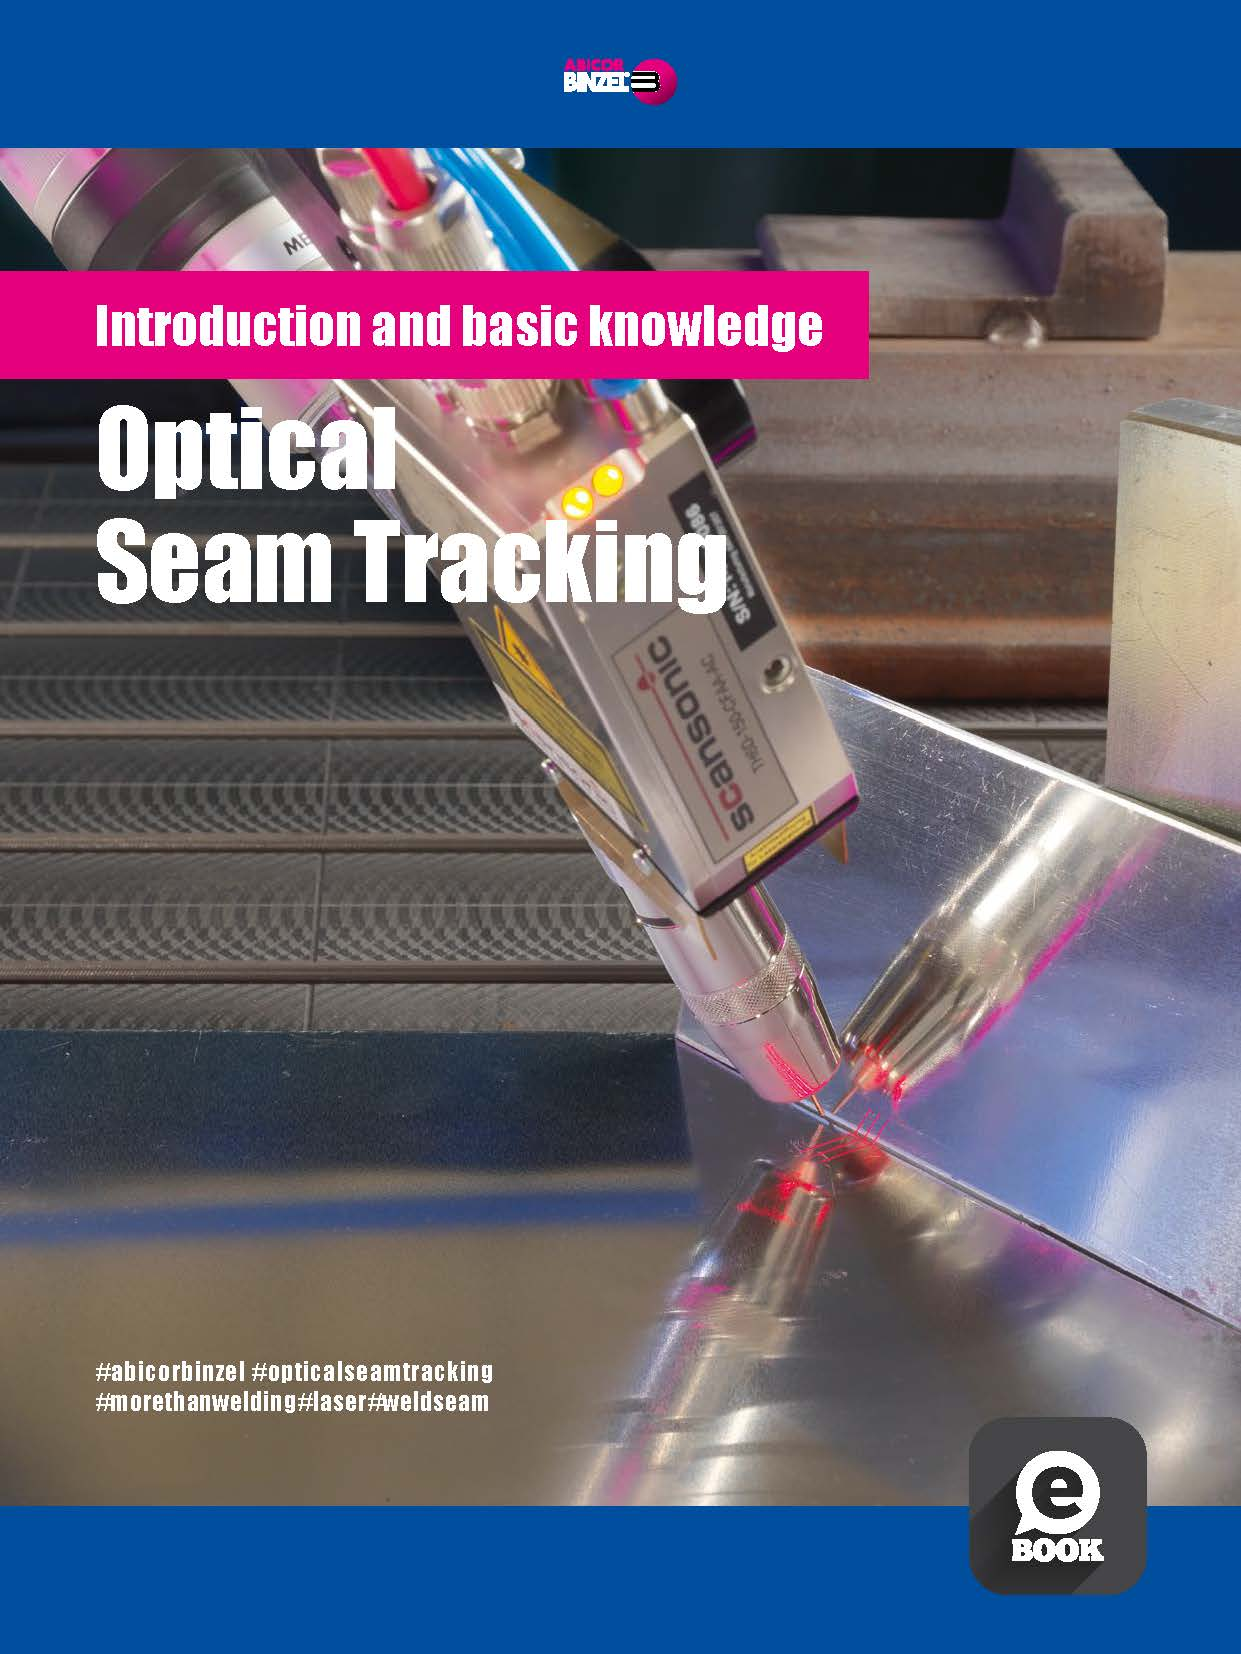 Optical Seam Tracking